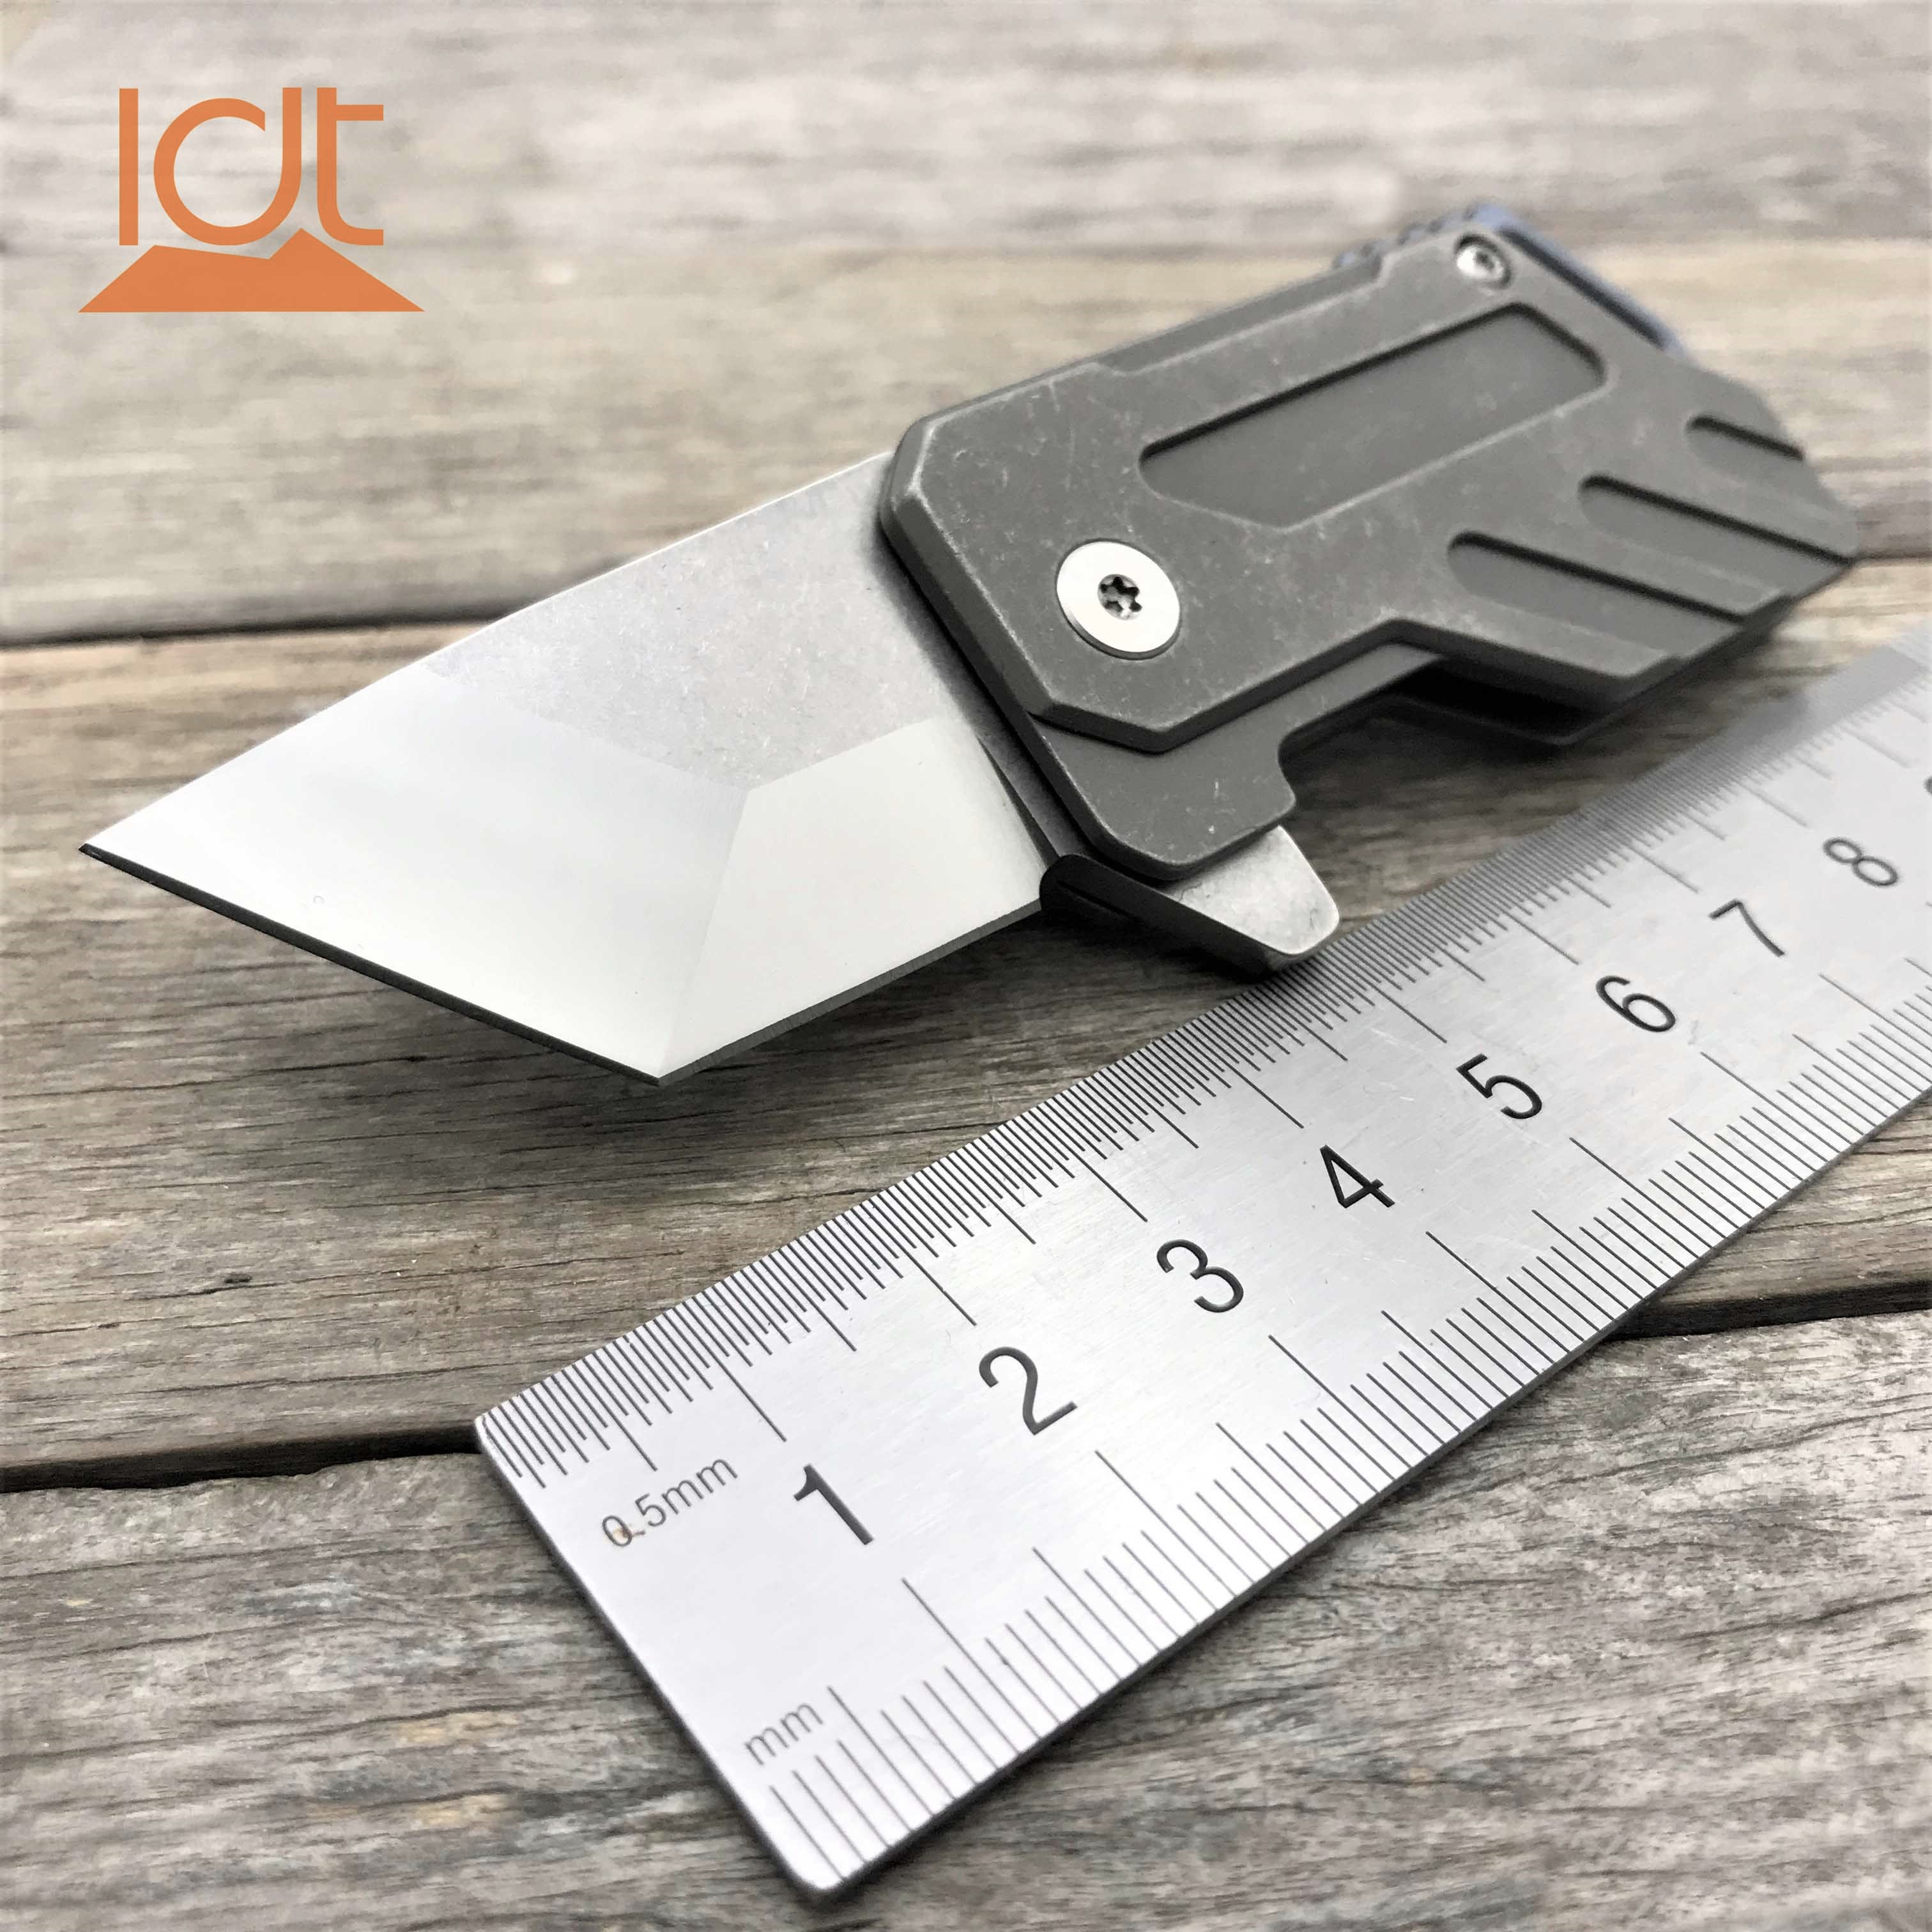 LDT Big Bean bearing Camping Knife S35VN Blade Titanium Handle  Outdoor Knives folding  Packet knife Hunting Survival EDC Tools|Knives| |  - title=